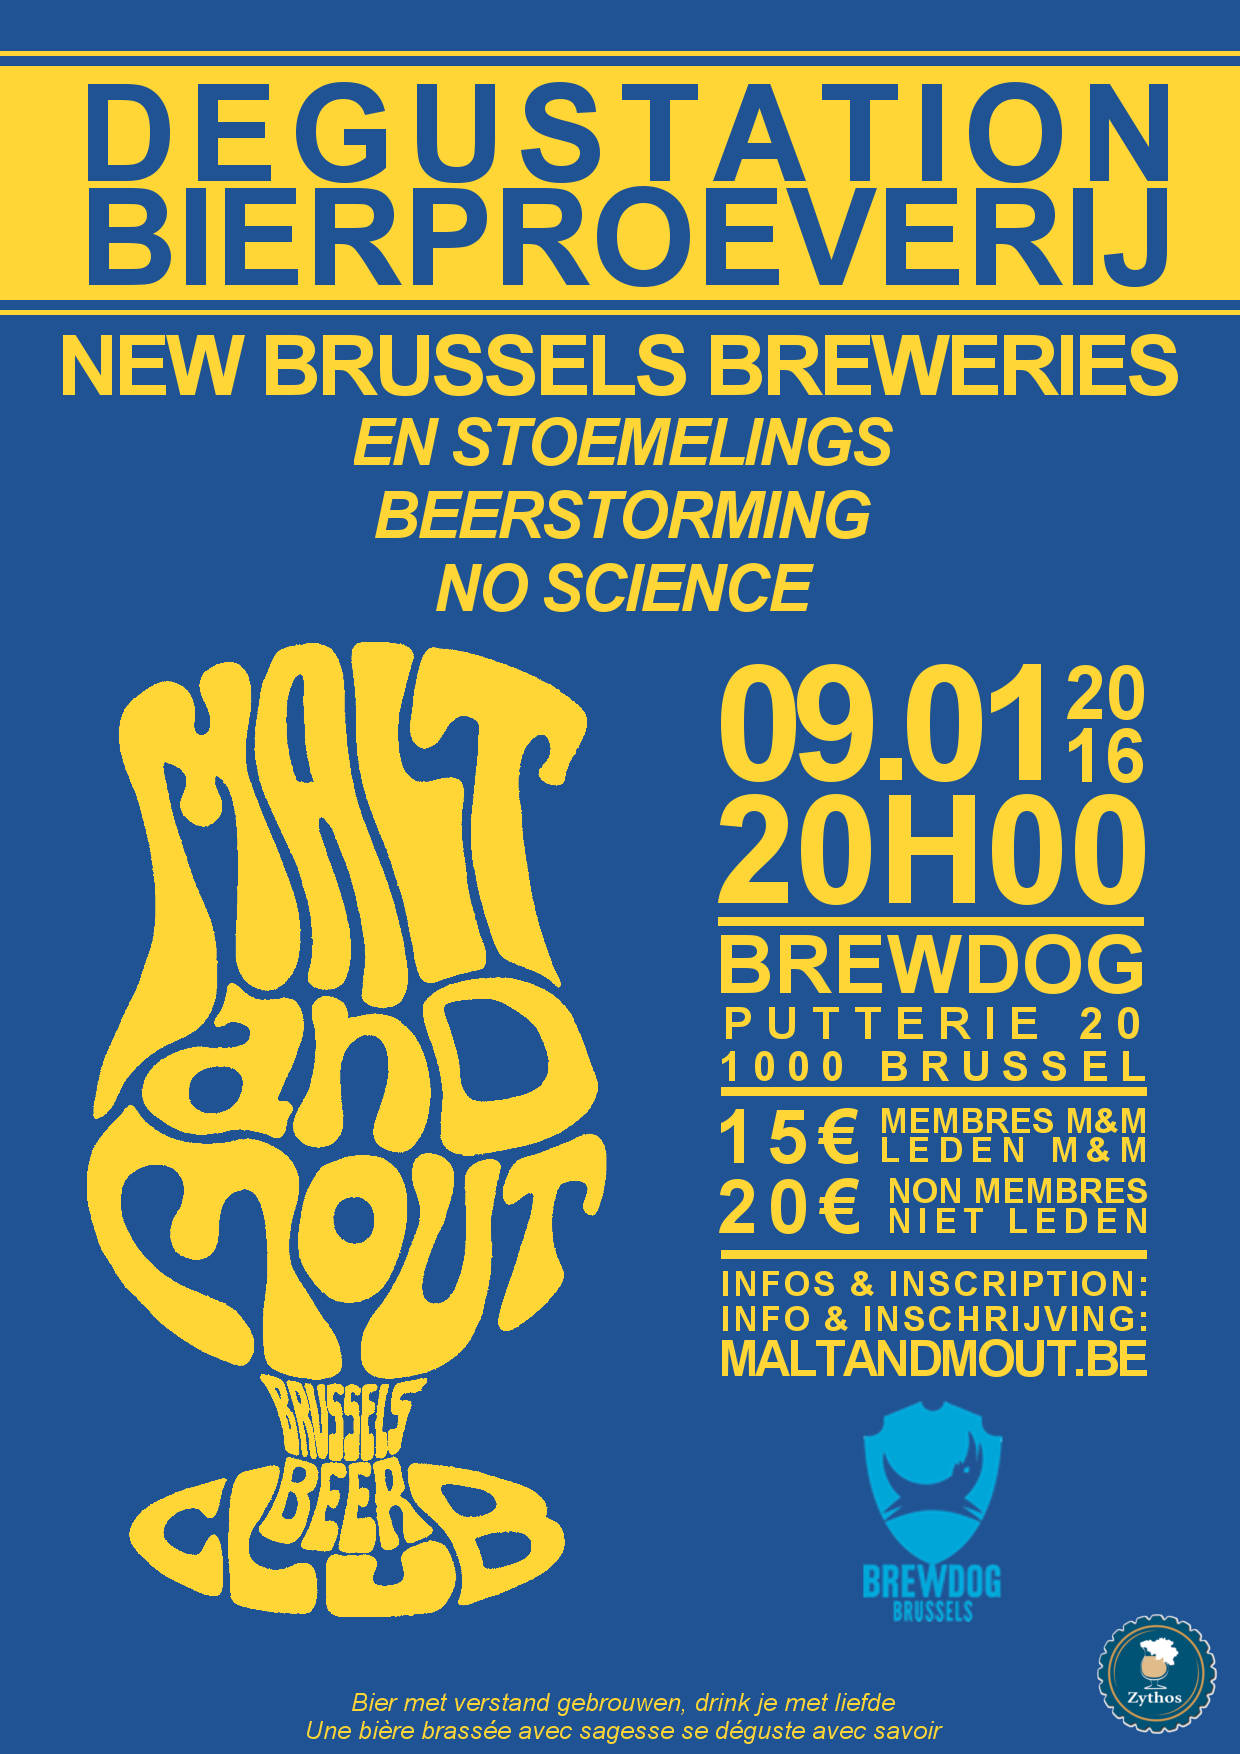 New Brussels Breweries